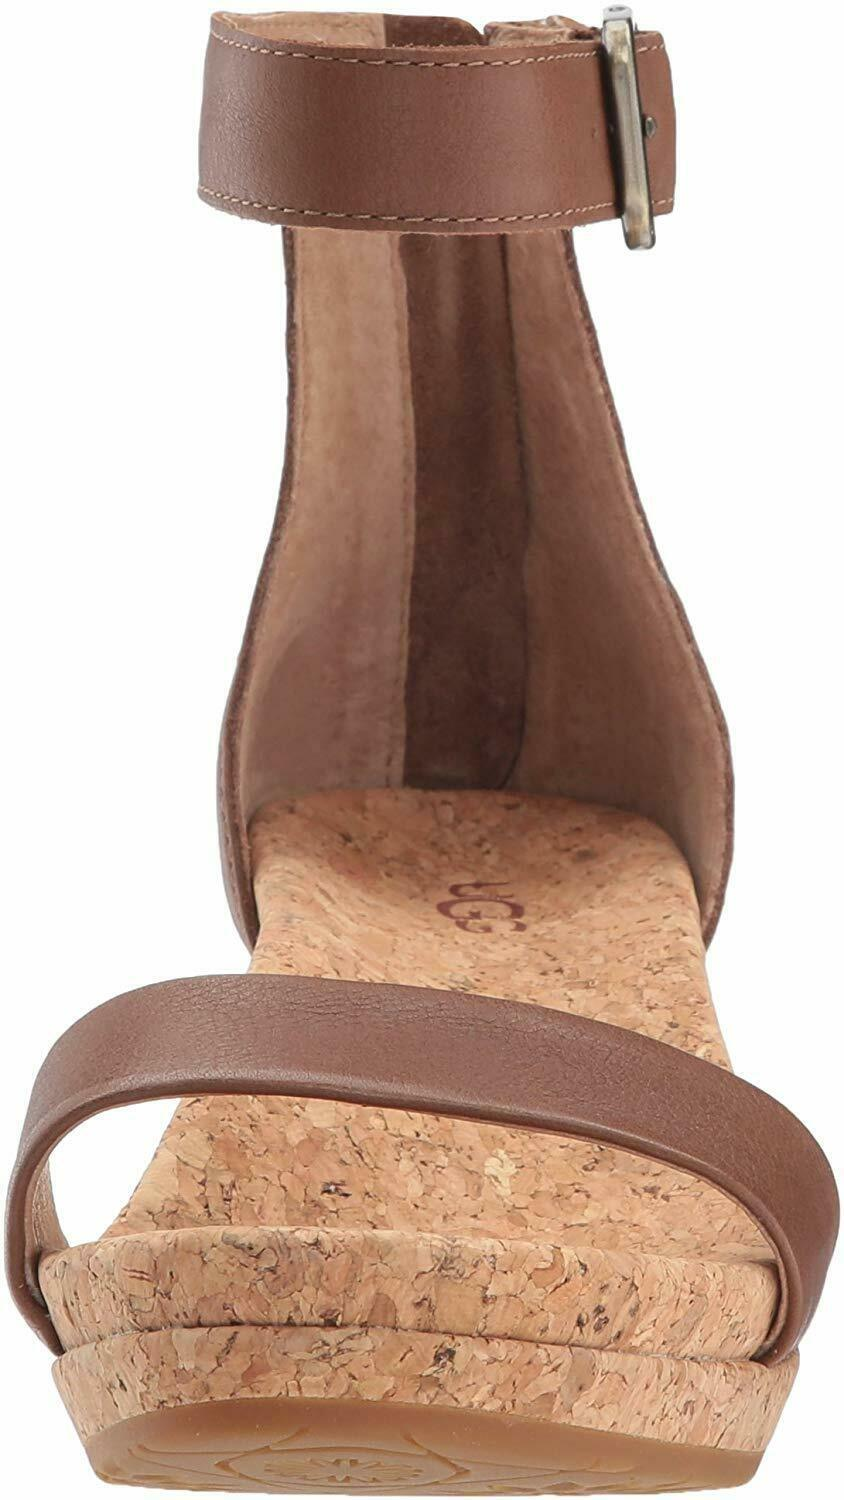 Primary image for UGG Women's Zoe Wedge Sandal, Chestnut, 6.5 M US/4.5 UK/36 EU